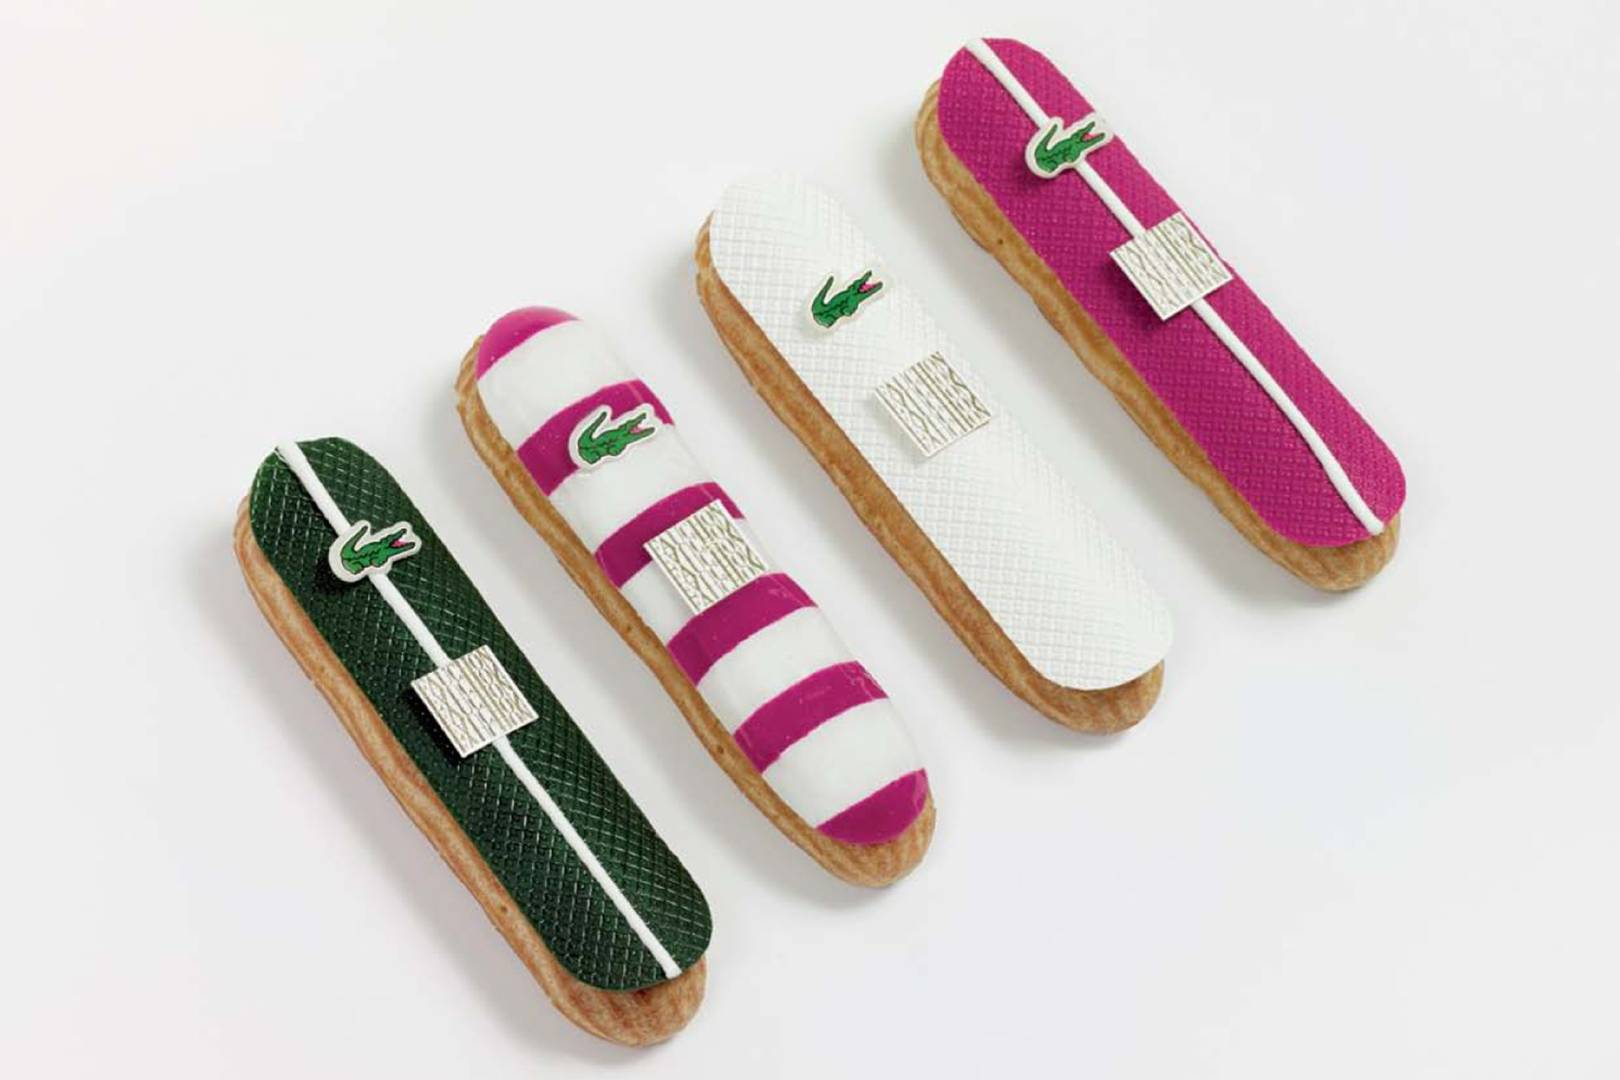 Lacoste-Maisons-Francaises-80th-Anniversary-Collection-Fauchon-Chocolate-Eclairs